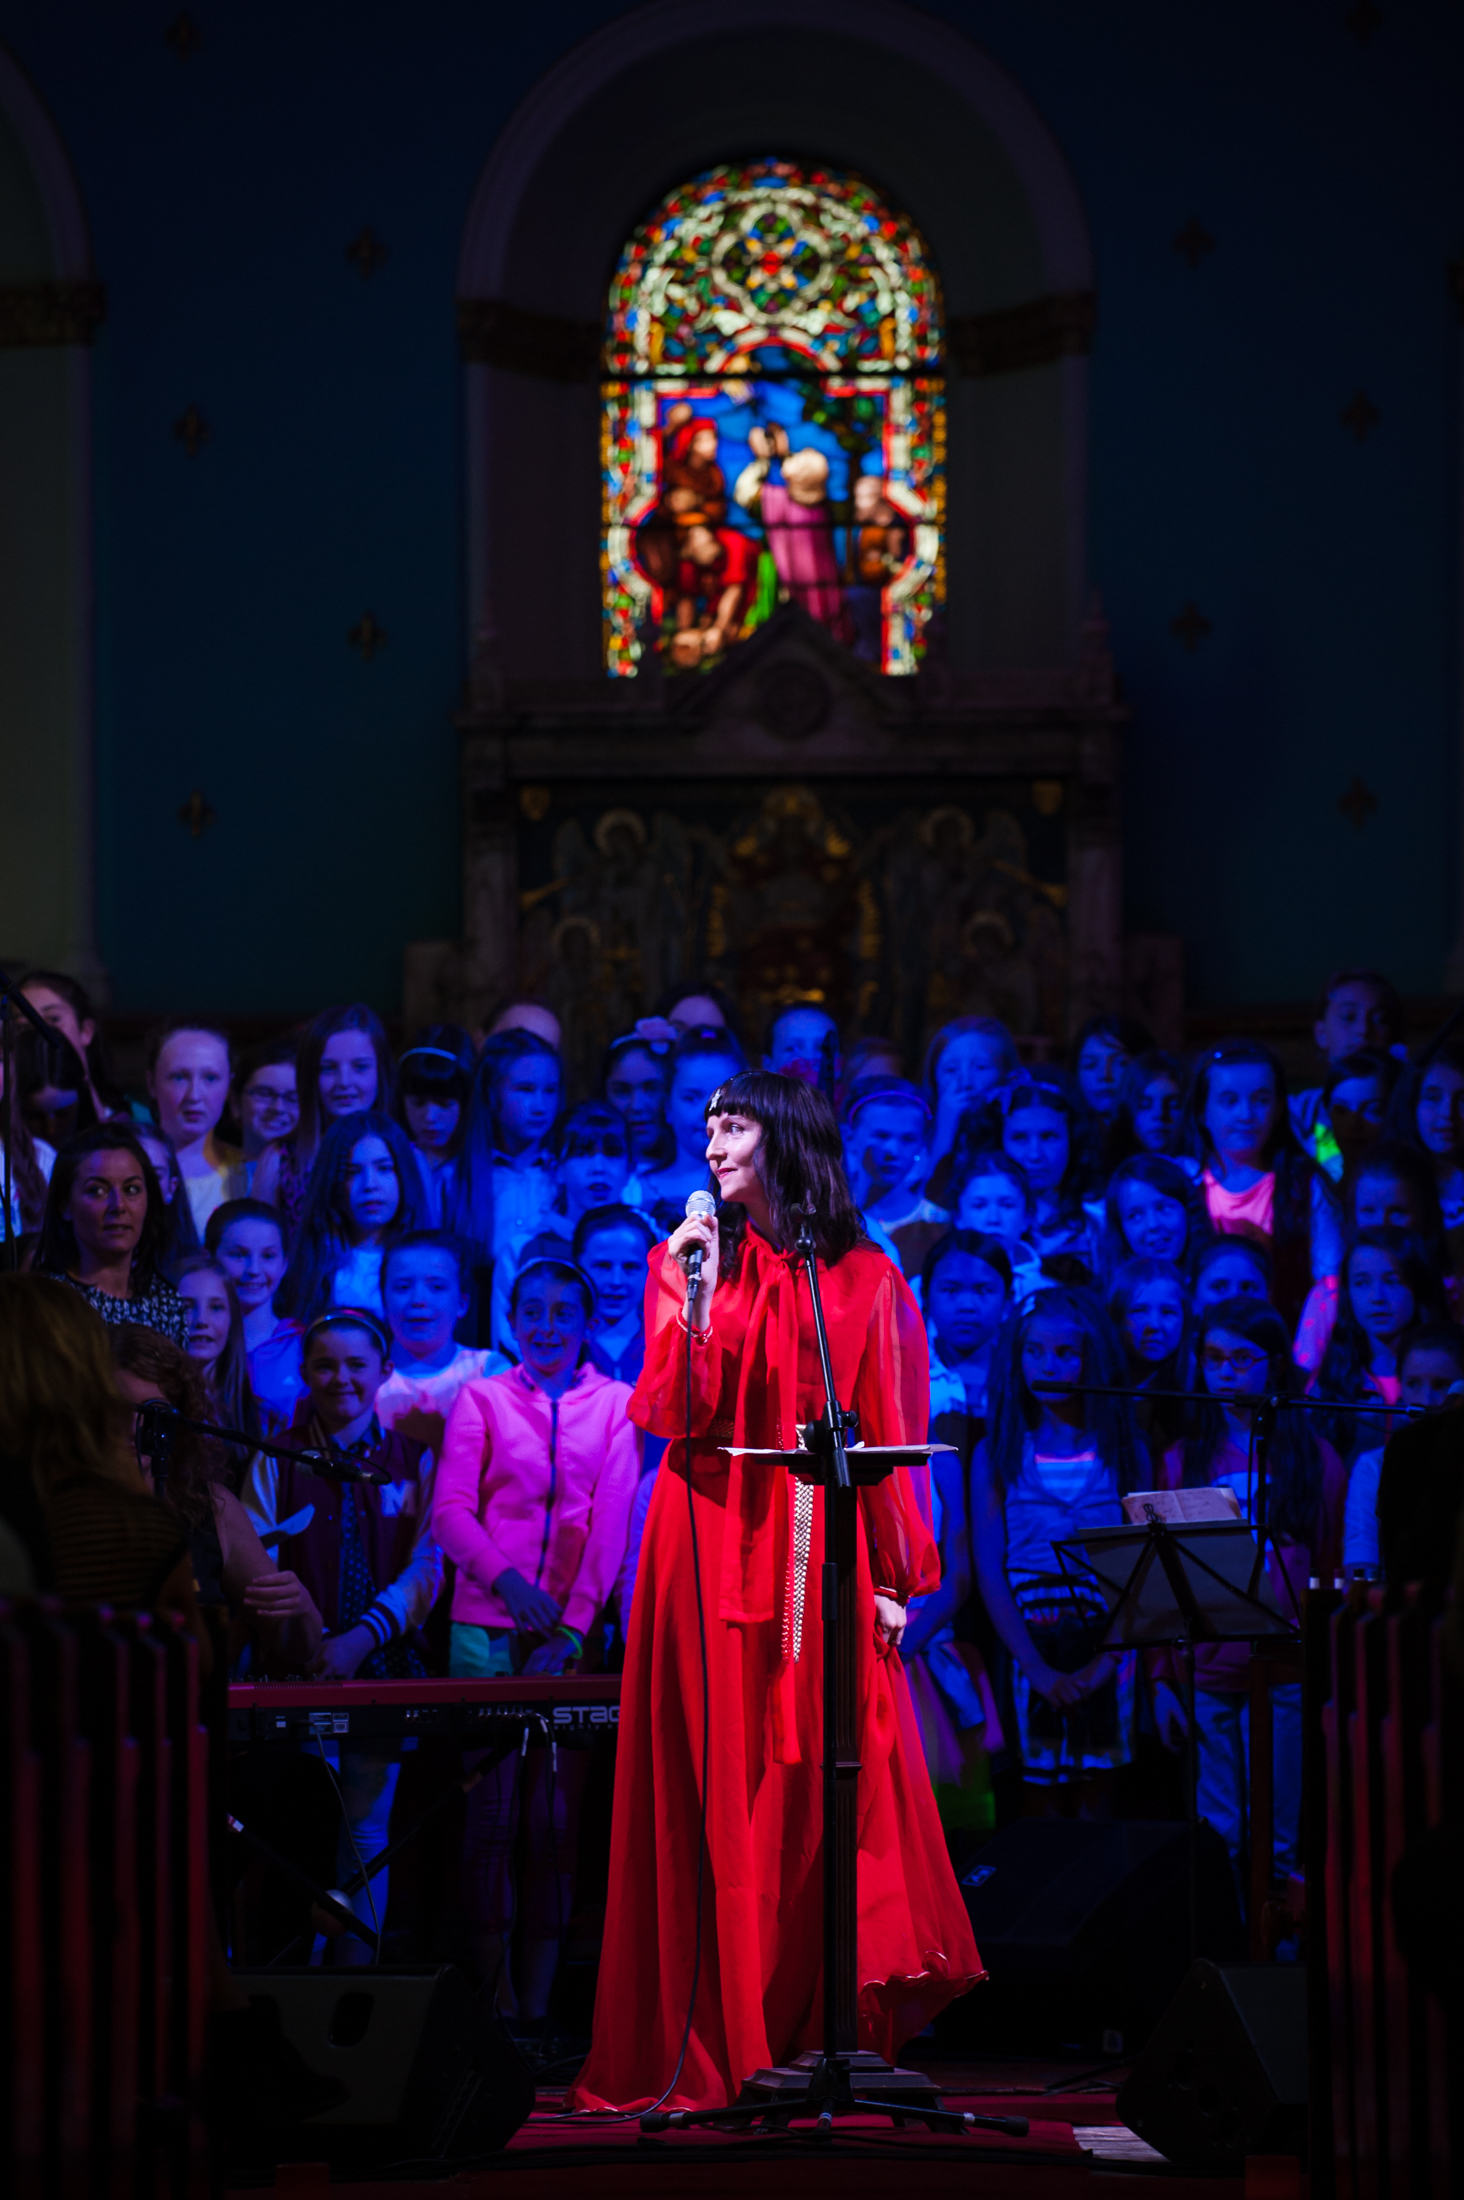 Nina_Hynes_and_choir-Evolving_our_Past-_Rites_of_Passage-_Eoin_Kirwan_photo.jpg